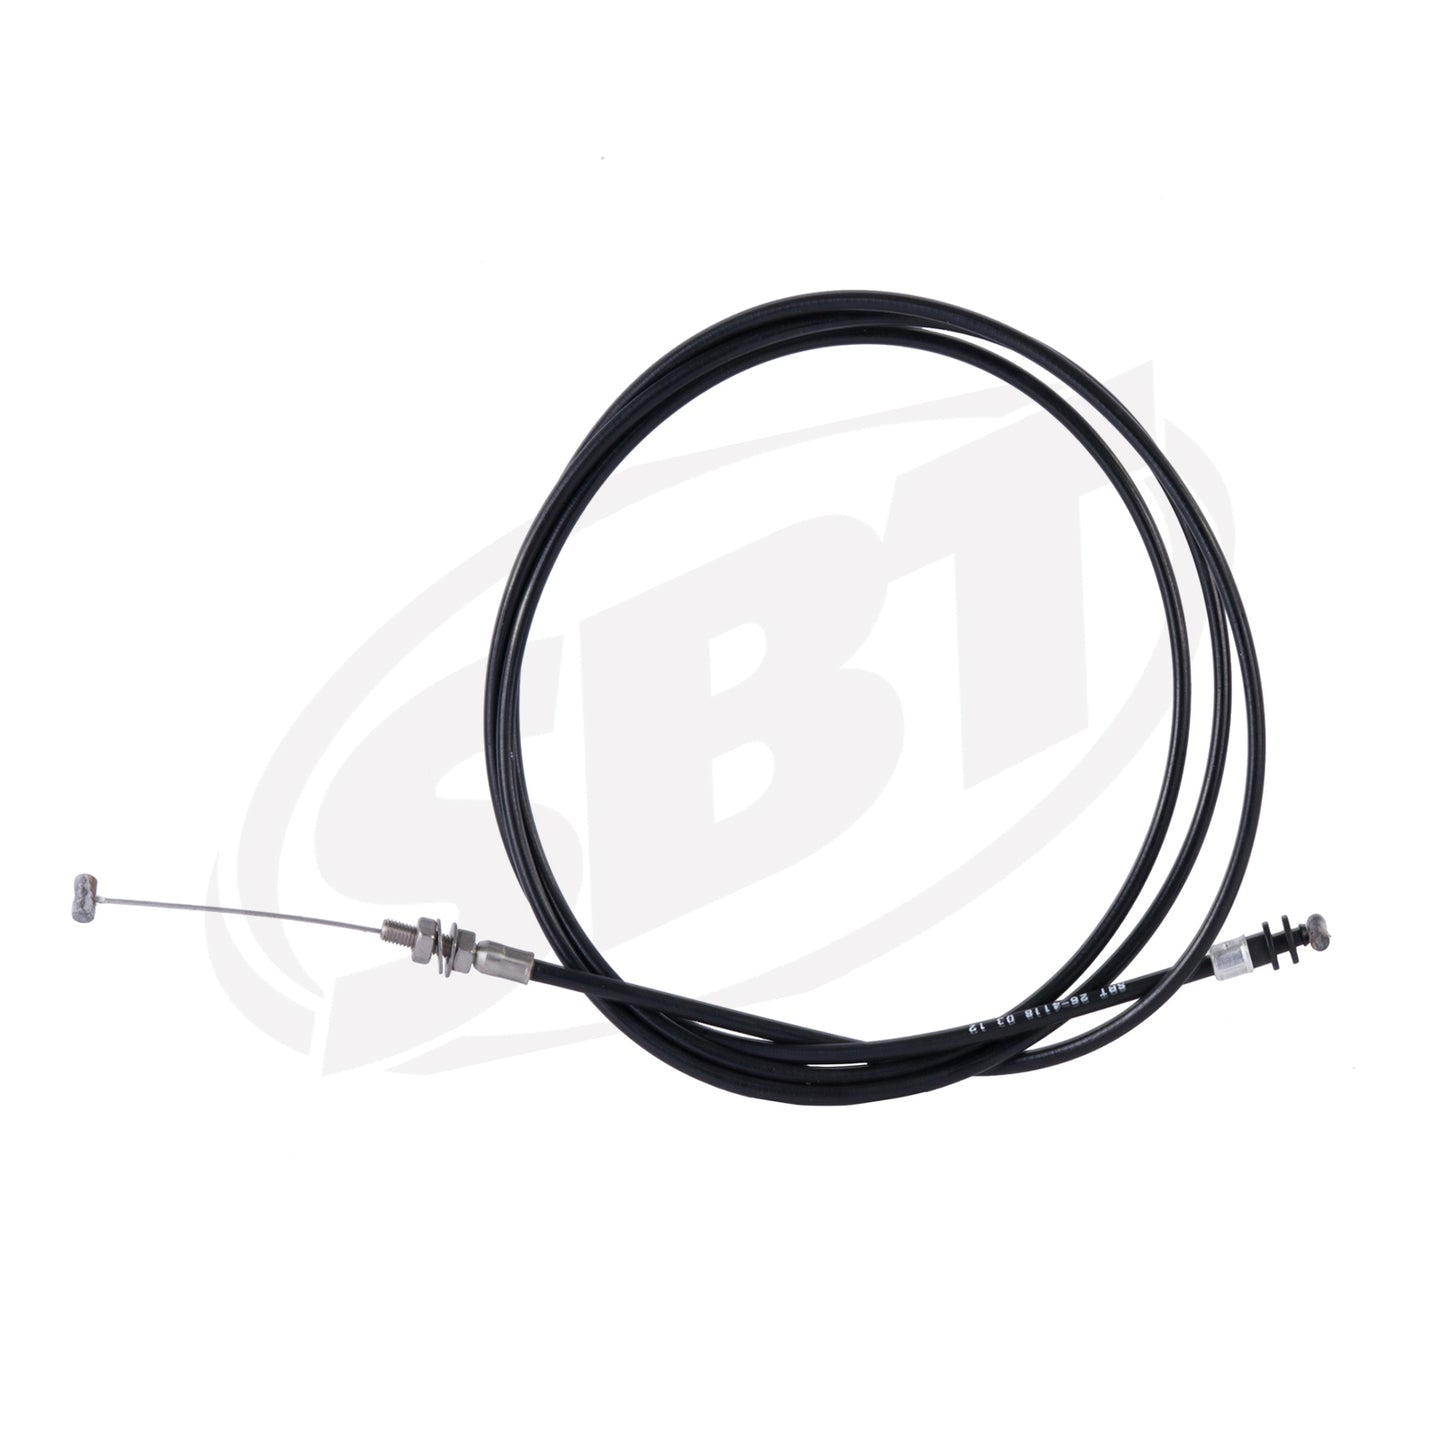 SBT Sea-Doo Throttle Cable XP 277000622 1997